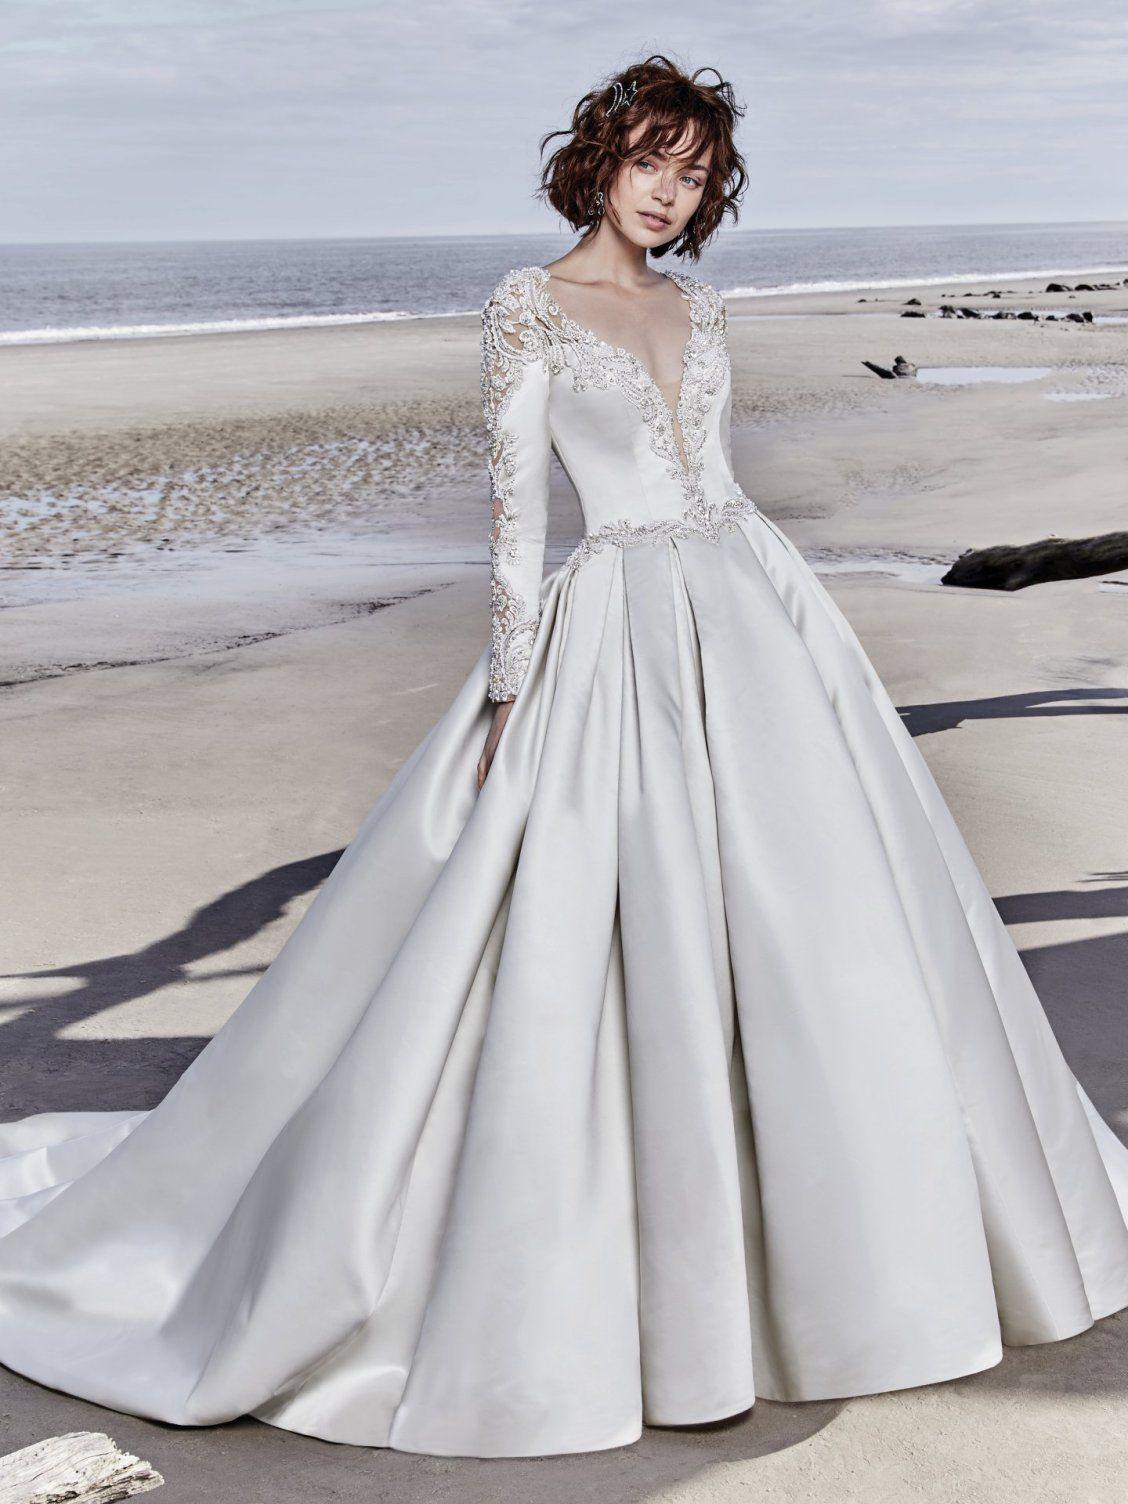 970af0c927 ... This breathtaking Carlo Satin wedding dress features long sleeves  accented in exquisite illusion lace details and beading. Swarovski crystals  adorn the ...